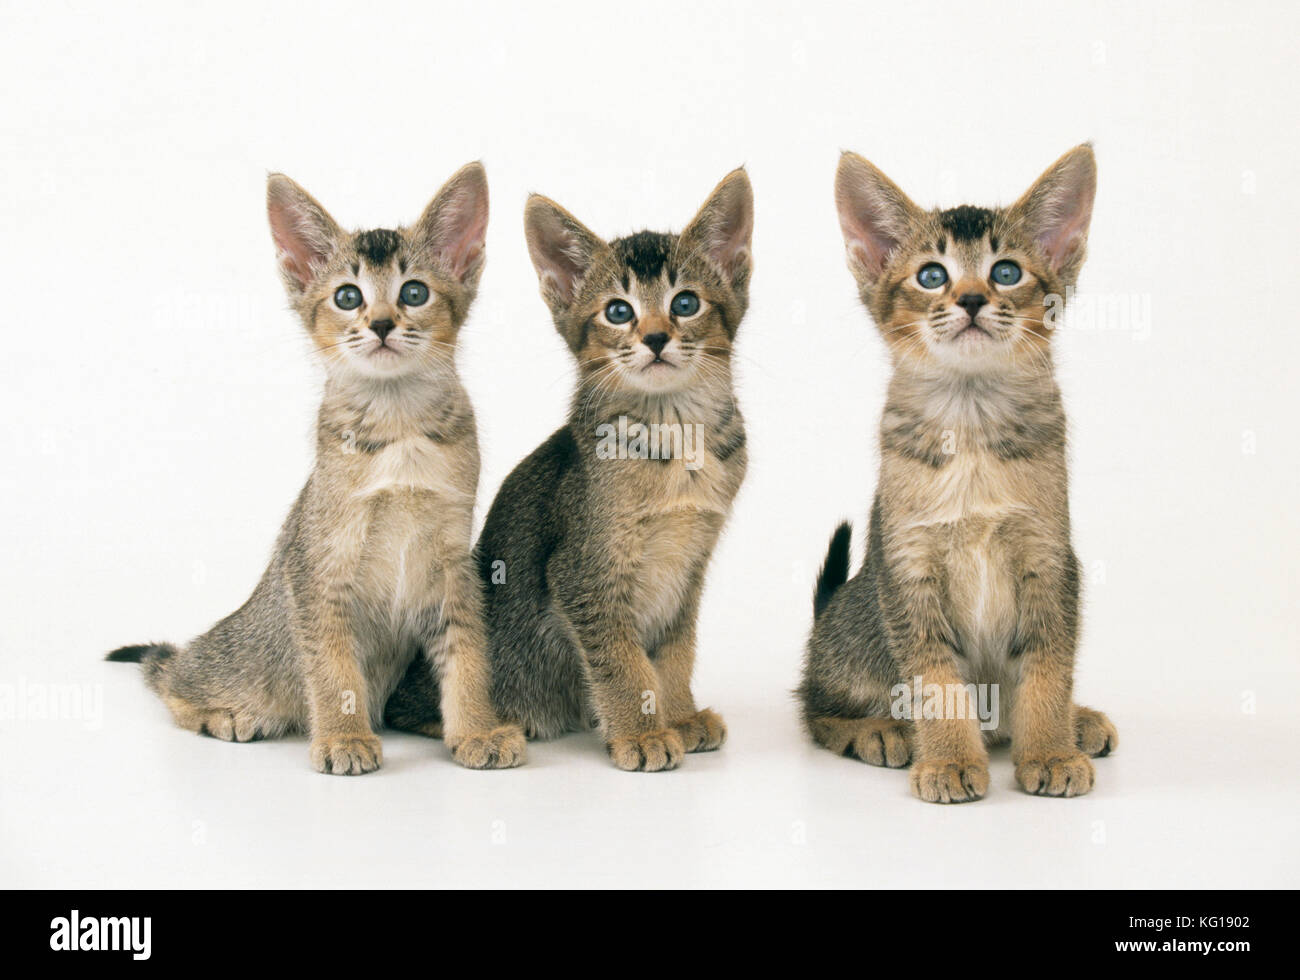 Cute Kittens Row Stock Photos & Cute Kittens Row Stock Images - Alamy